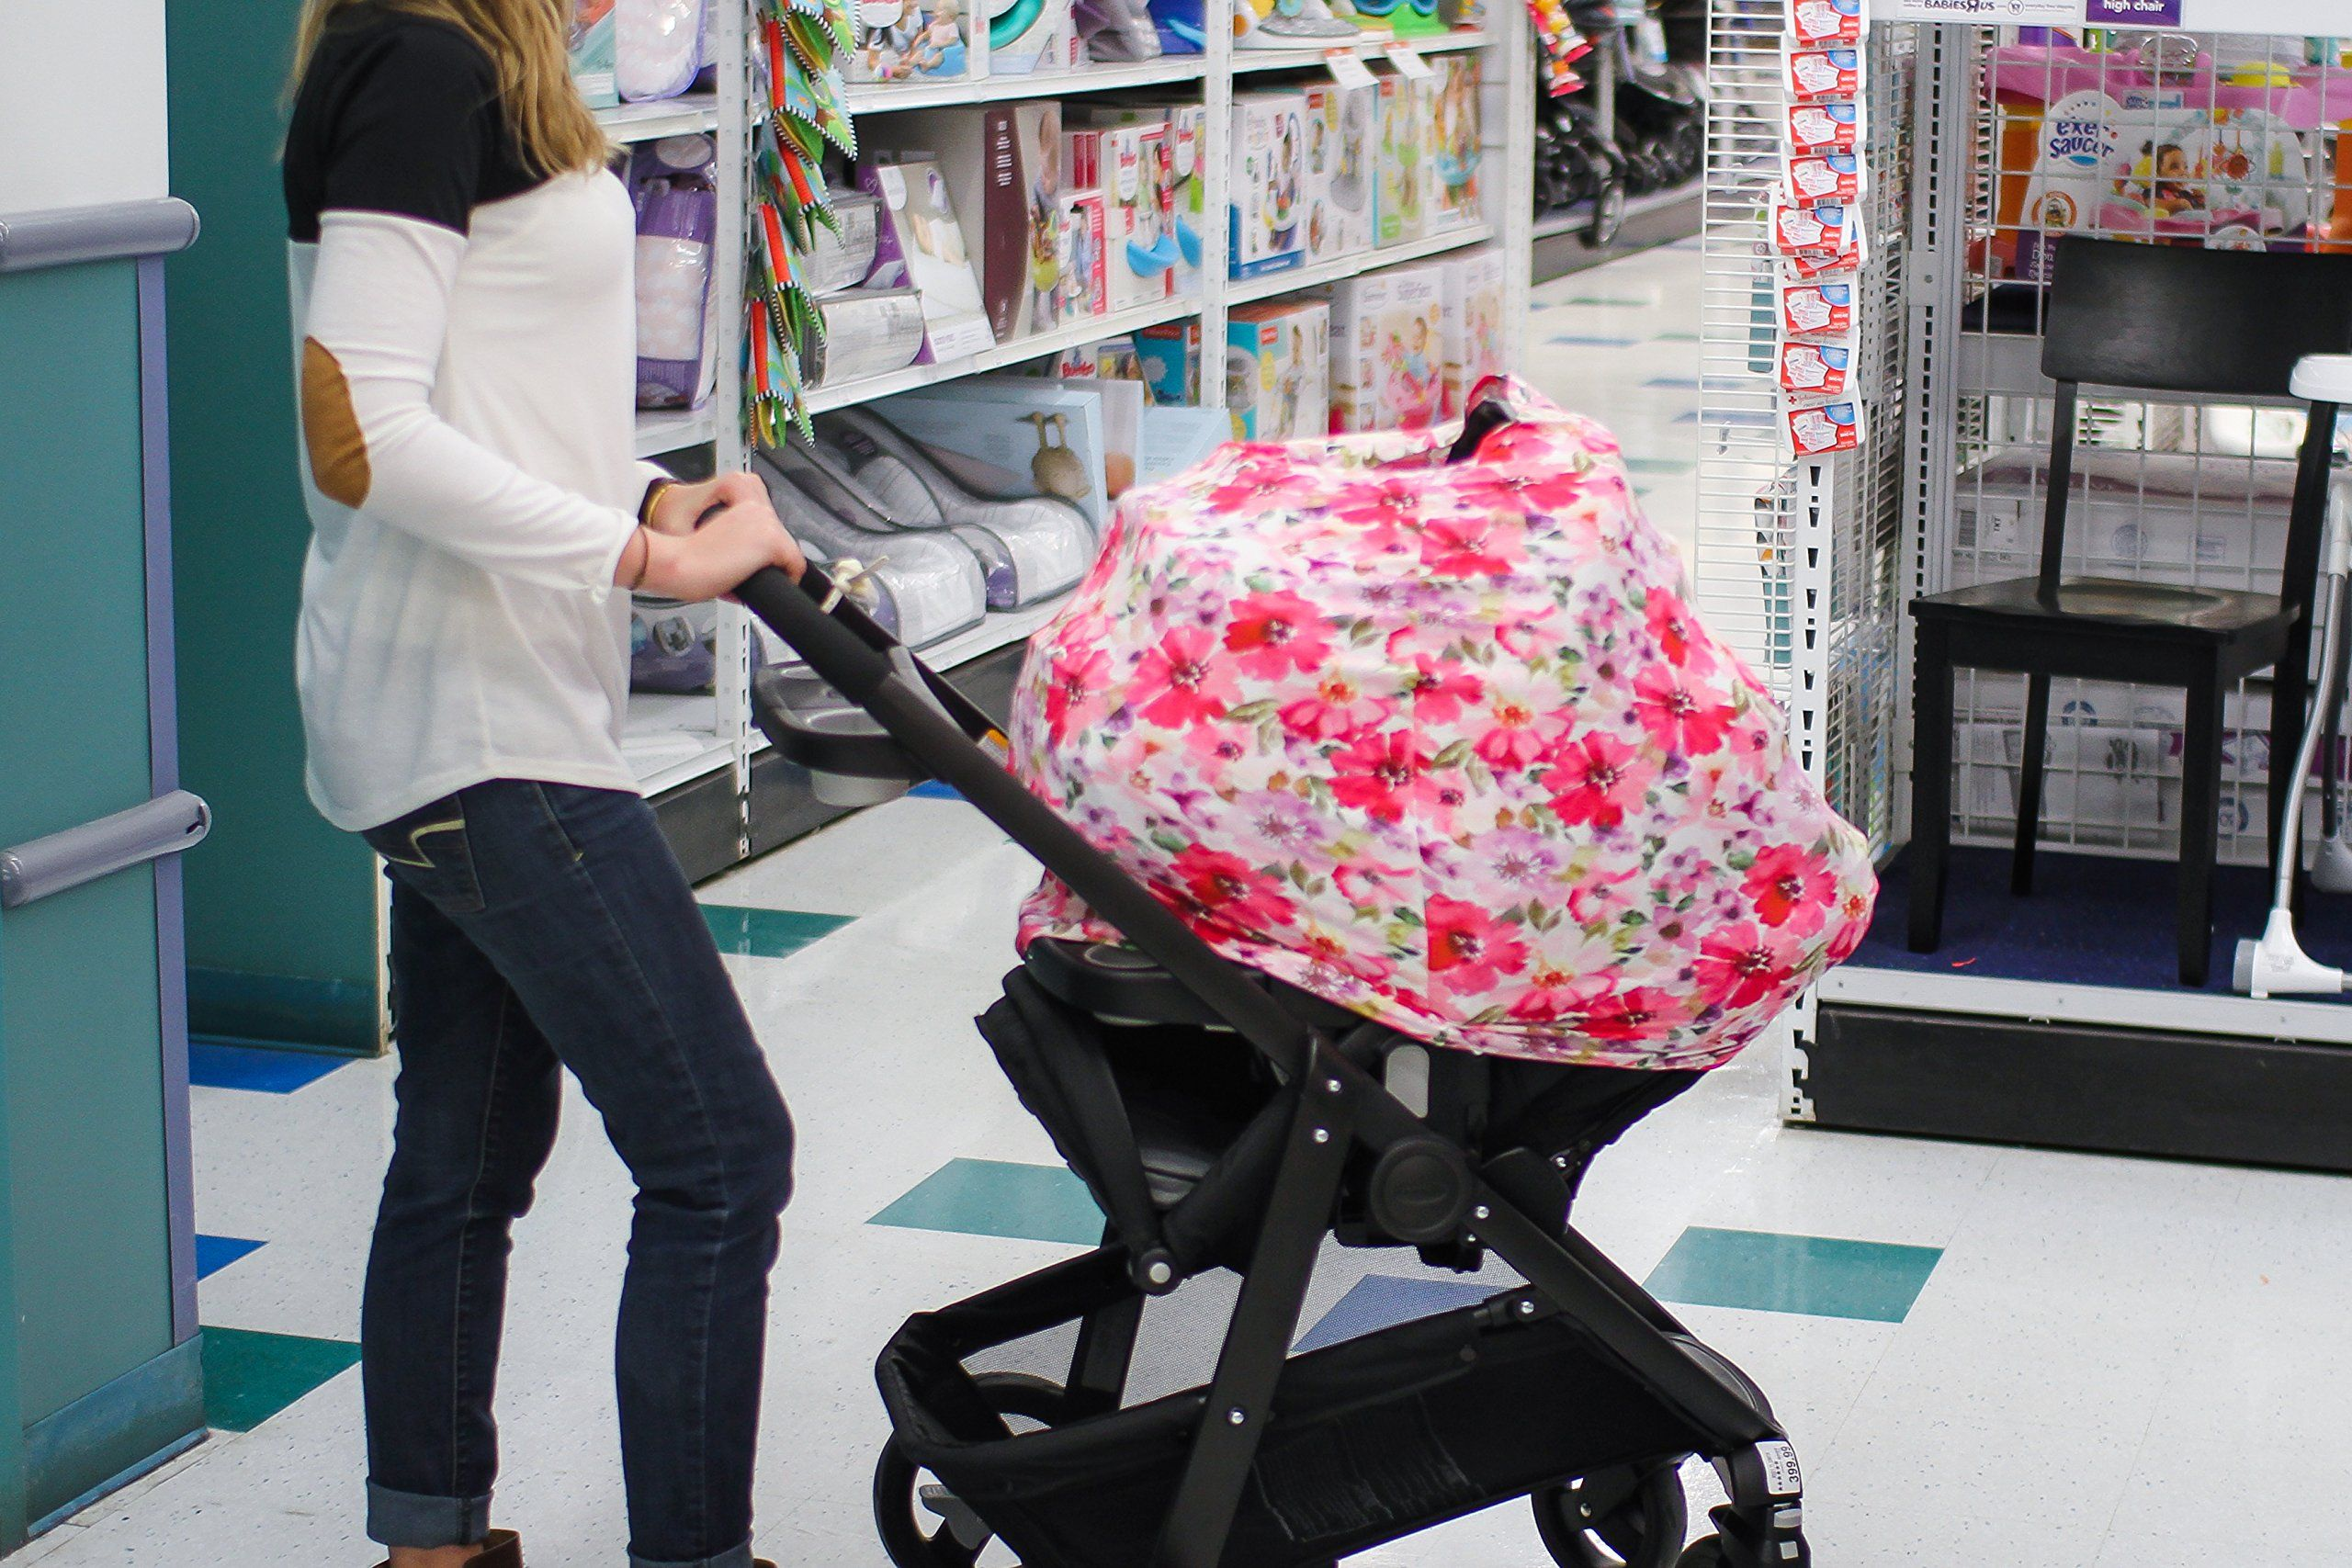 Baby Car Seat Cover Nursing Cover for Breastfeeding Moms